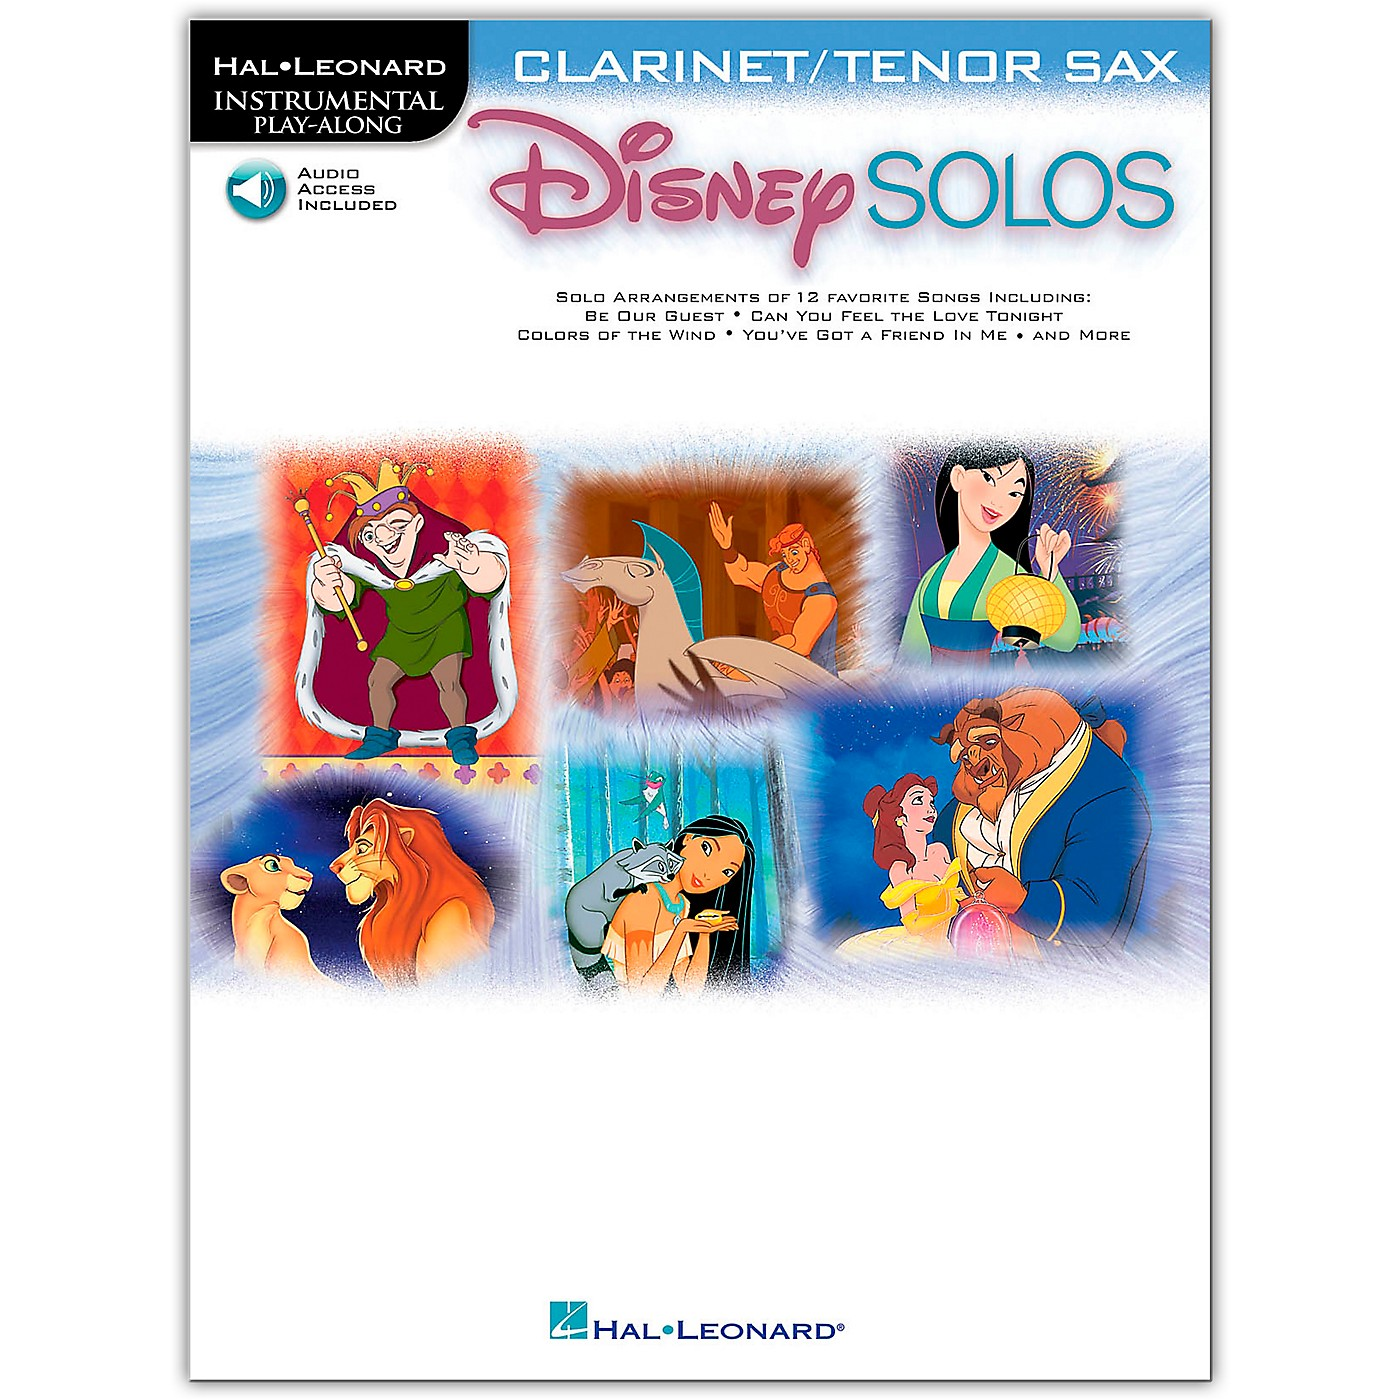 Hal Leonard Play-Along Disney Solos Book with Online Audio-Clarinet thumbnail